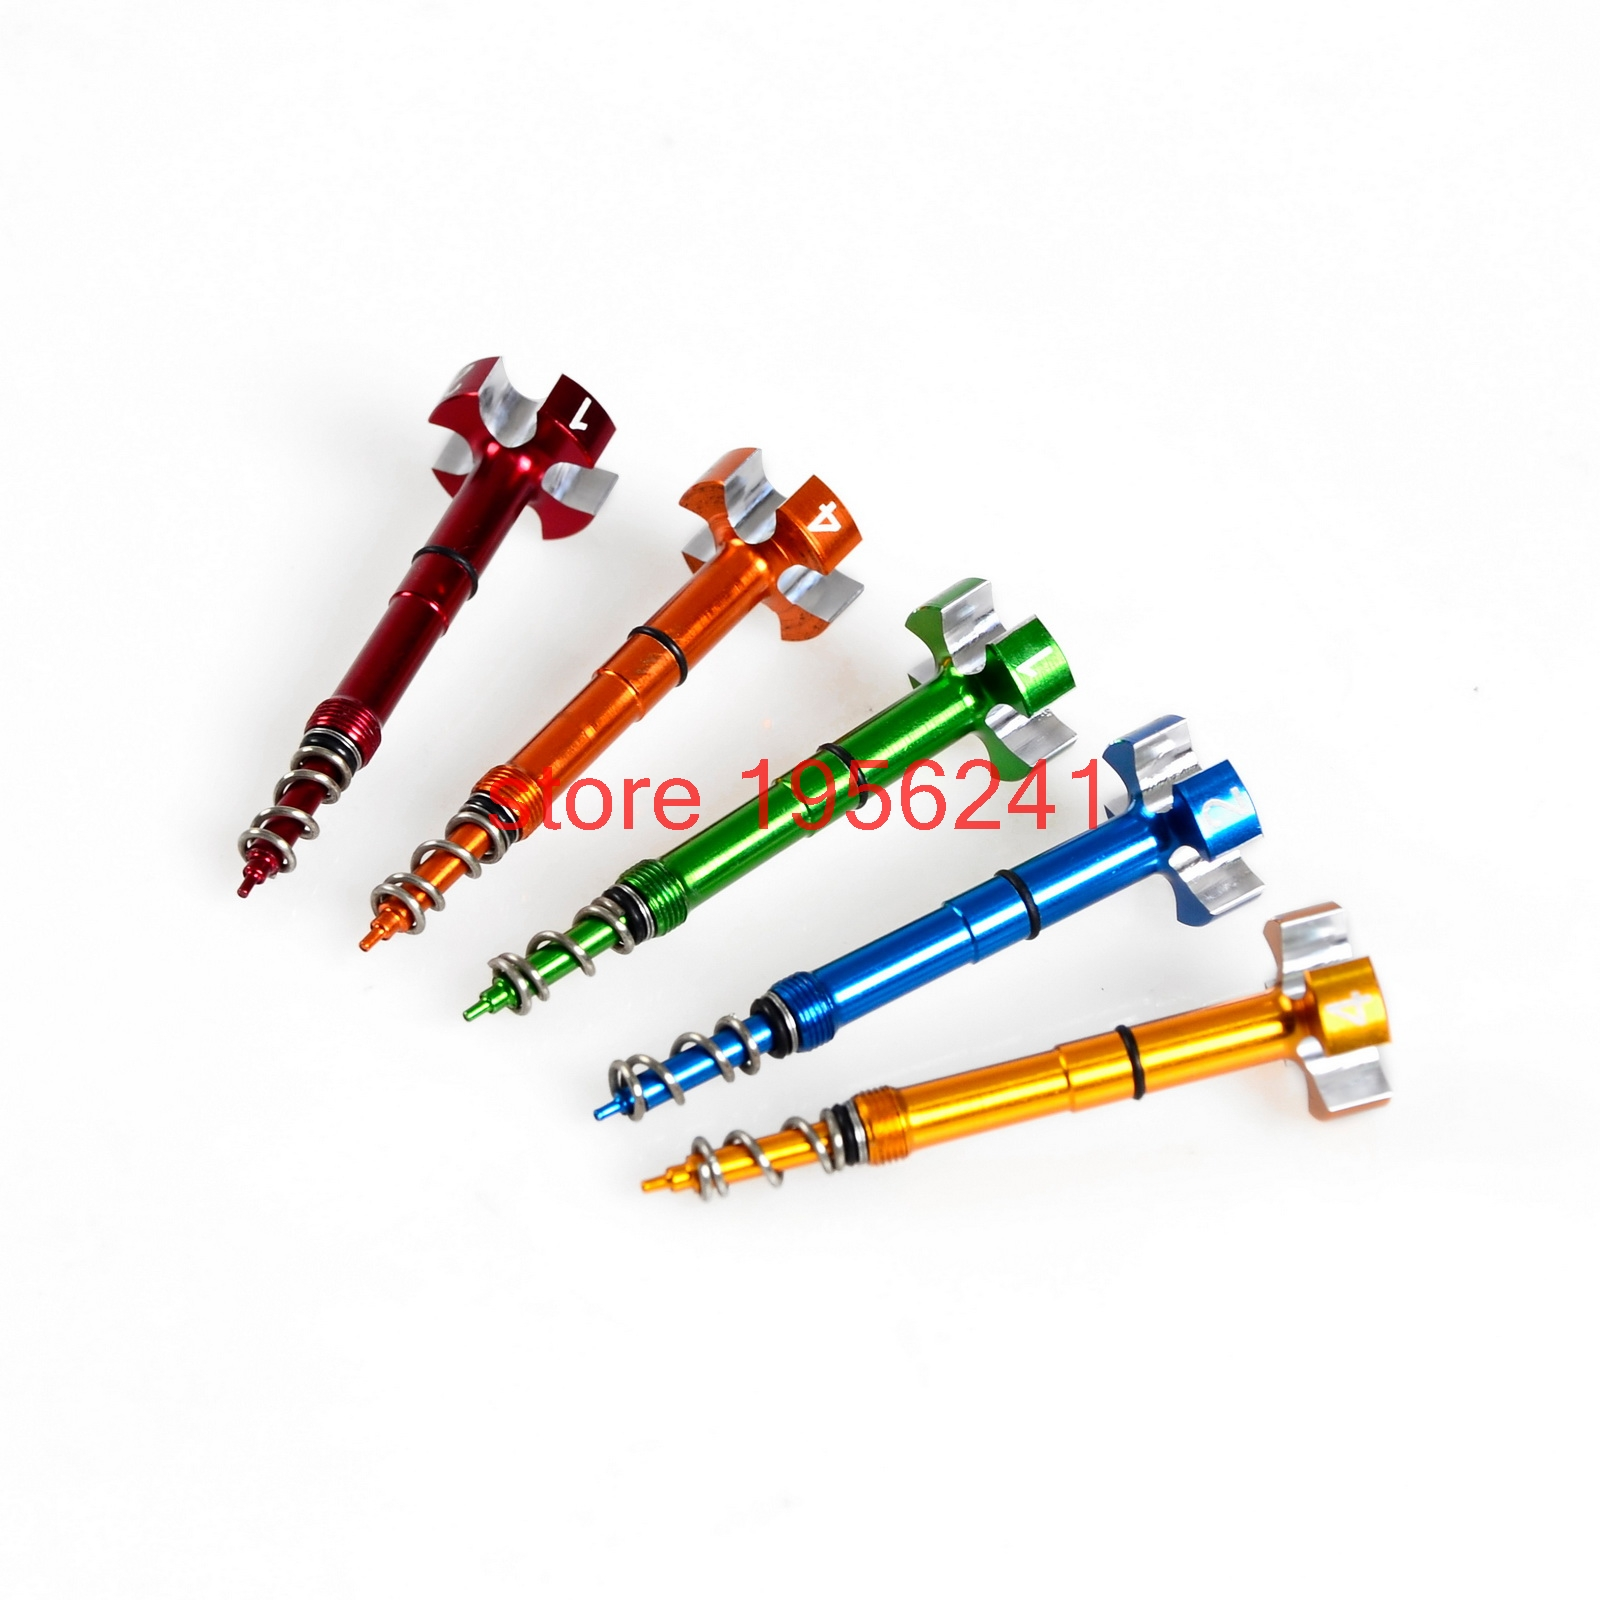 Air Fuel Mixture Screw Adjuster For Honda CRF150R CRF250R CRF250X CRF450R CRF450X TRX450R CRF 150R 250R 250X 450R 450X red cnc pivot brake clutch levers for honda crf 250r 450r crf250r crf450r 2004 2006 crf 250x 450x crf250x crf450x 2005 2016